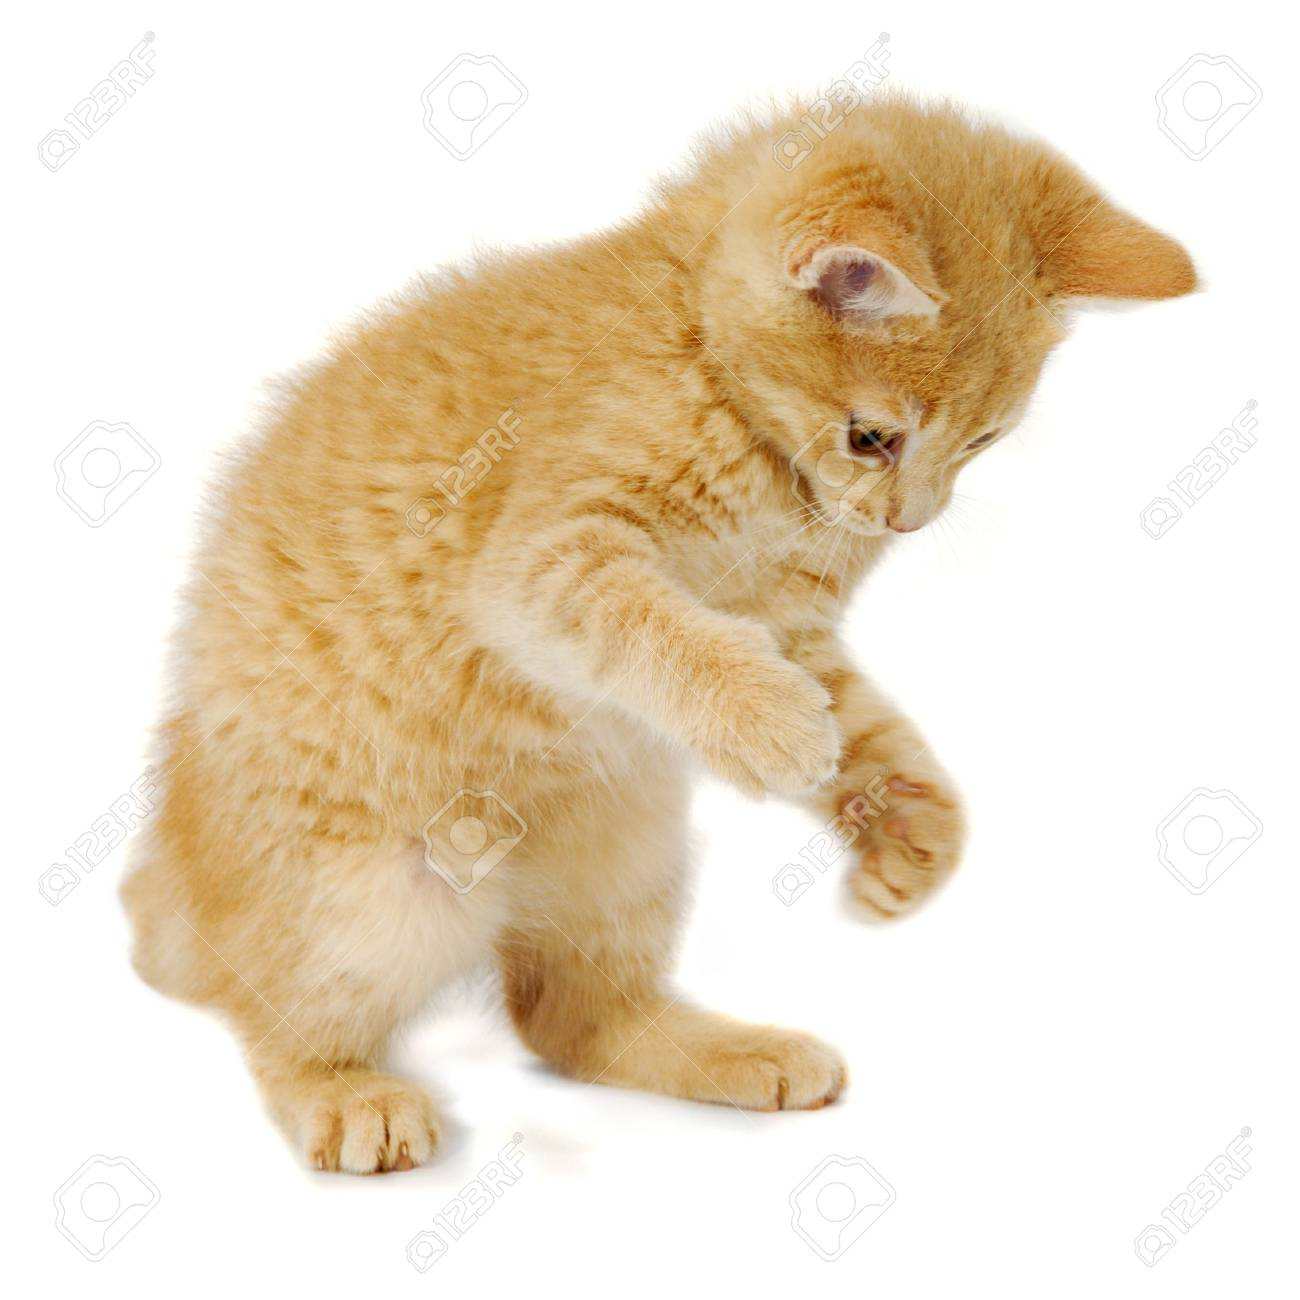 Kitten is standing on a white background Stock Photo - 6604391